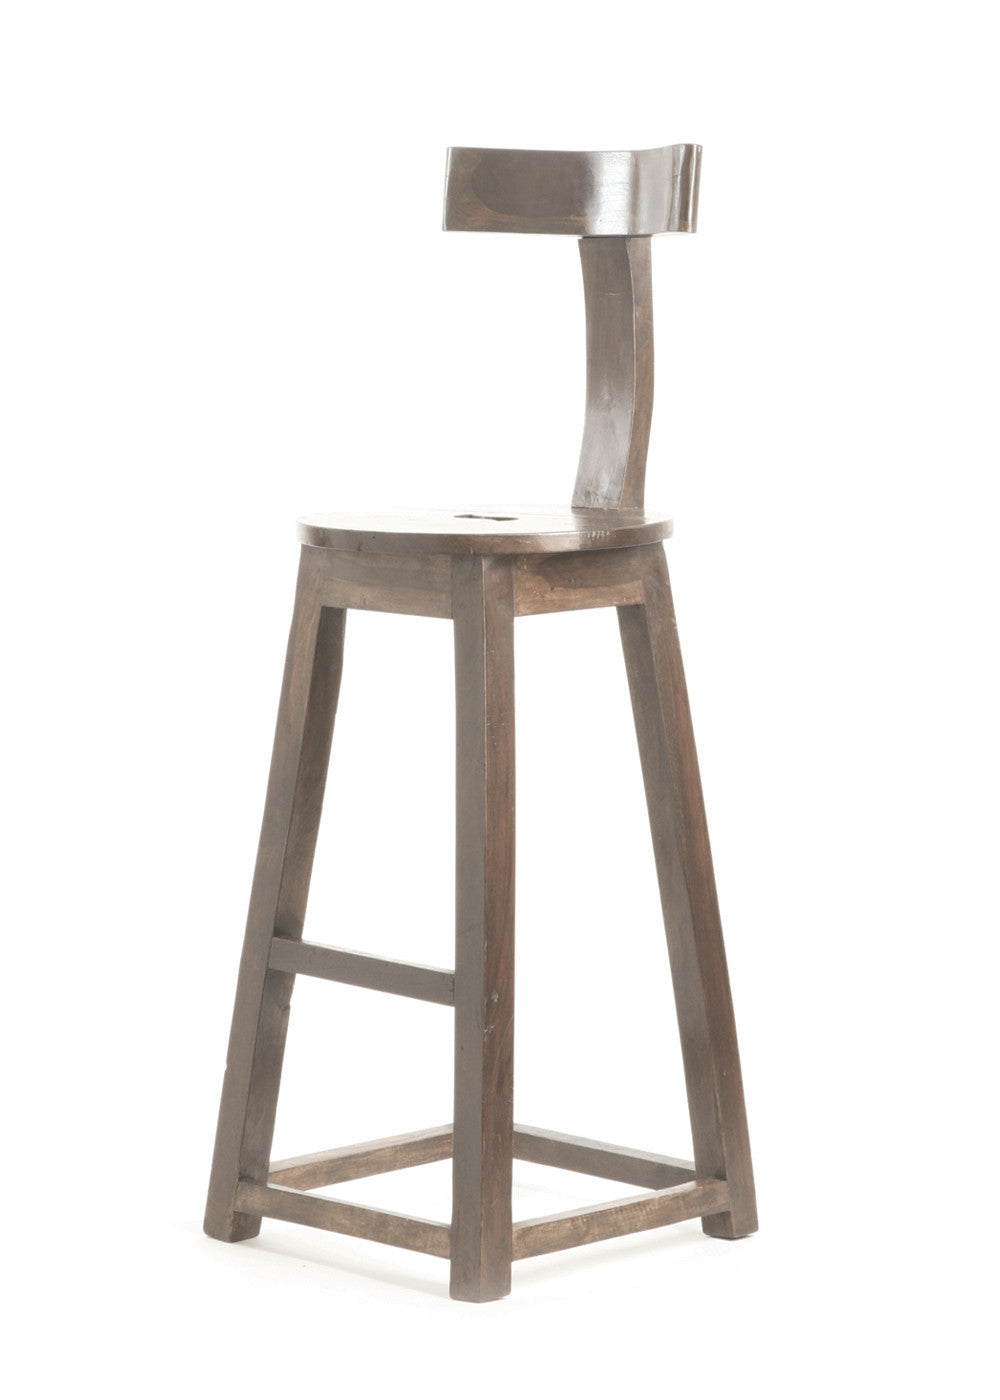 Miraculous 30 Inch Seat Height Rustic Wooden Bar Stool Set Of 2 Ibusinesslaw Wood Chair Design Ideas Ibusinesslaworg